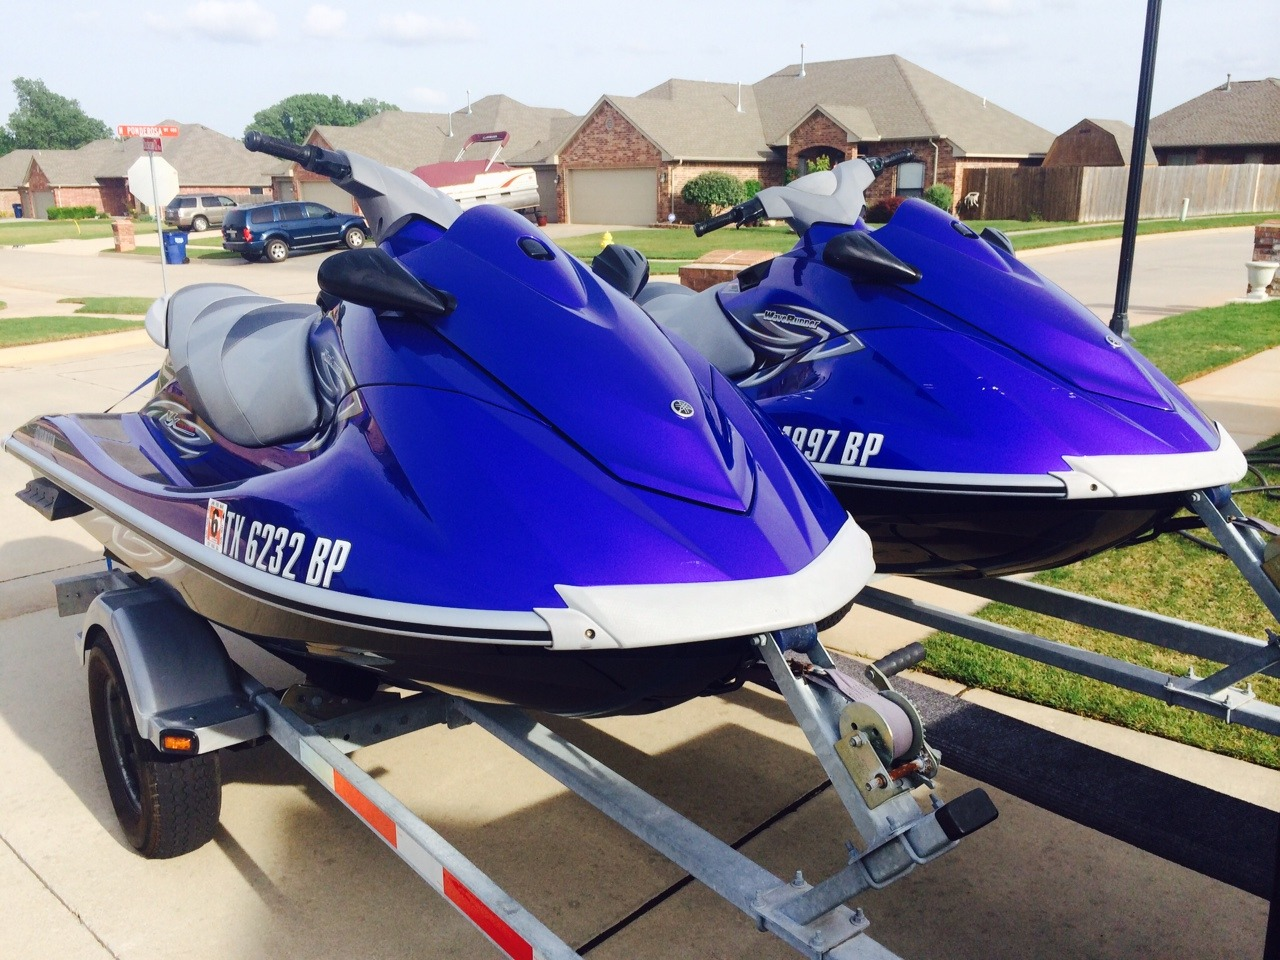 2012 Yamaha Vx Deluxe , motorcycle listing